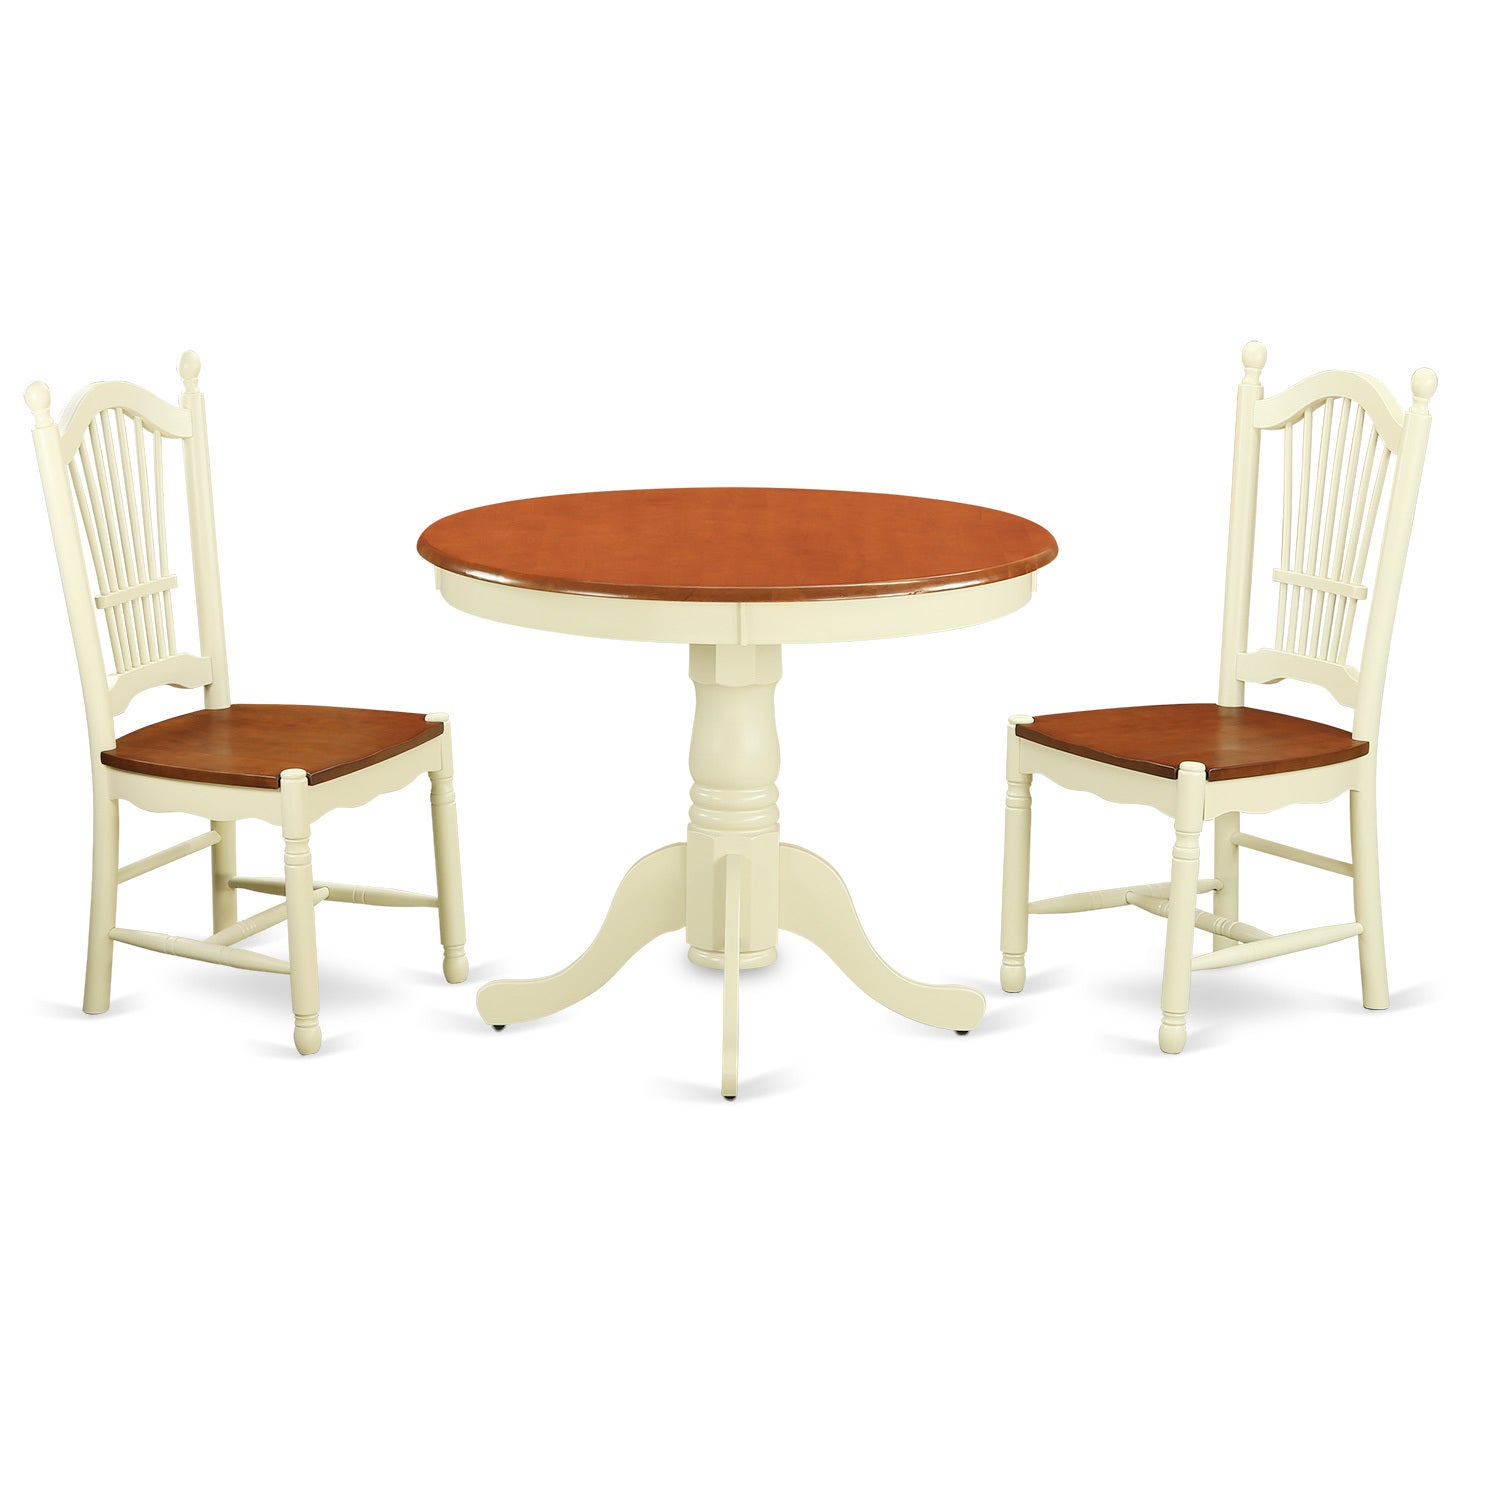 5-piece Kitchen Nook Dining Set For 2-dinette Table and 2...